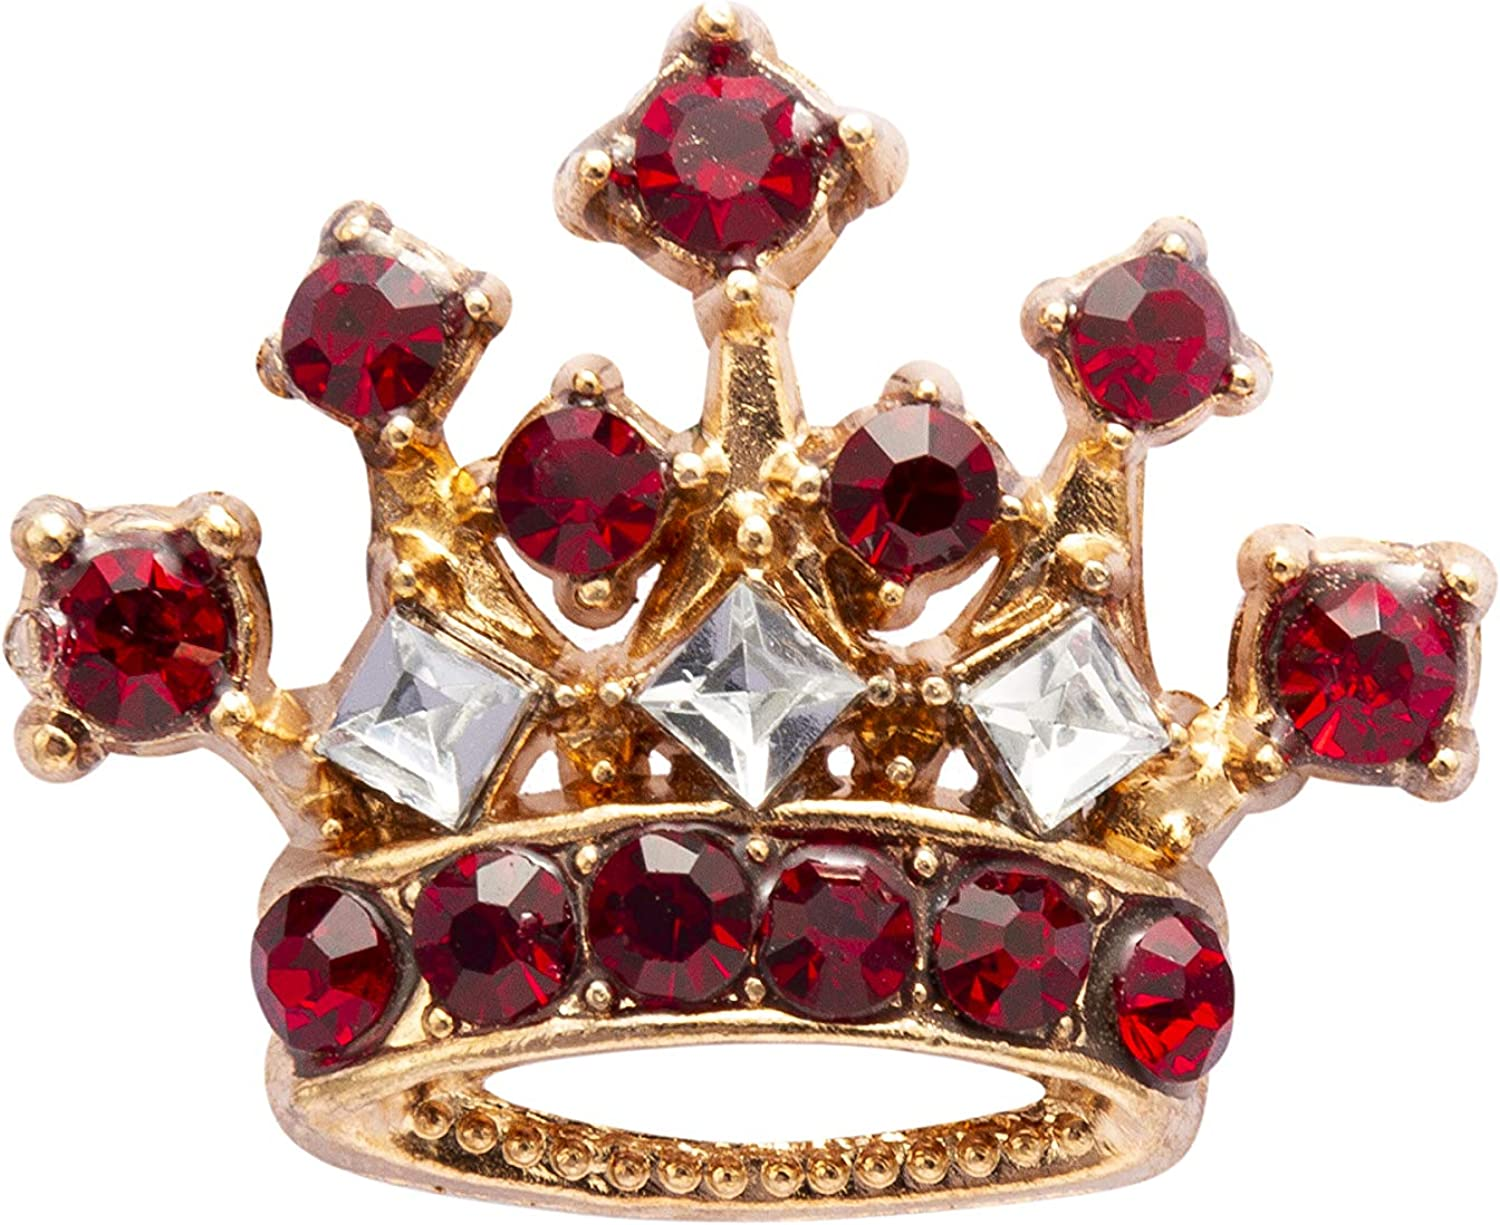 Knighthood Gold Crown With Maroon Stone Detailing Lapel Pin Brooch for Men